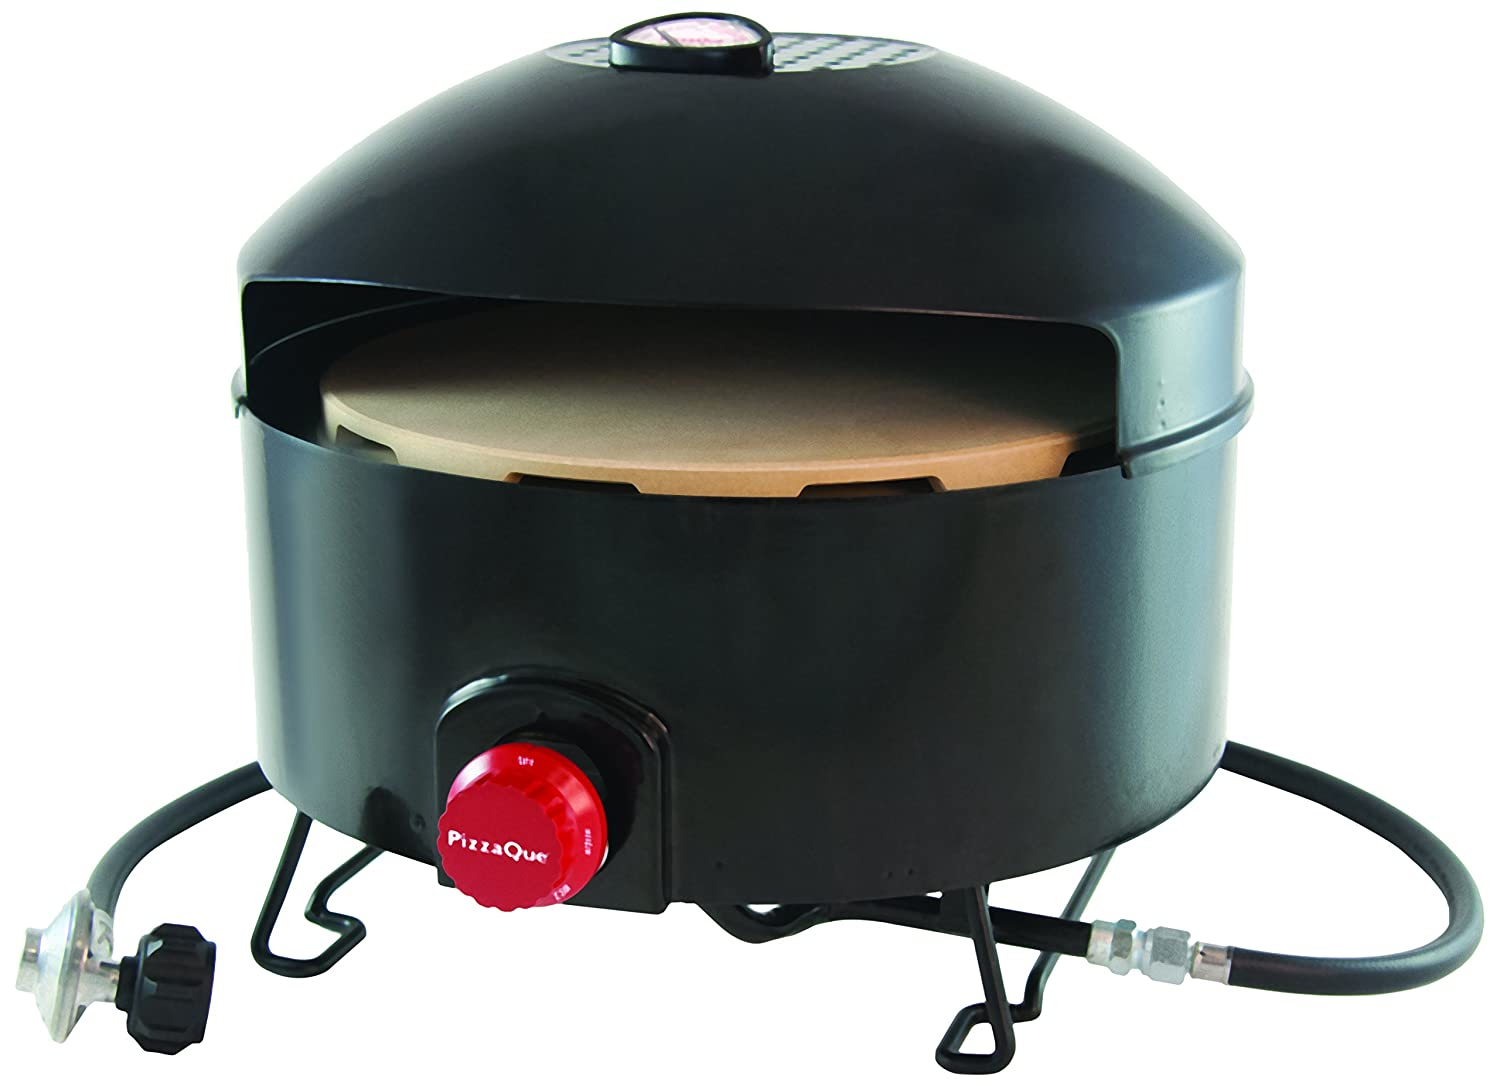 Pizzacraft PizzaQue PC6500 Portable Outdoor Pizza Oven